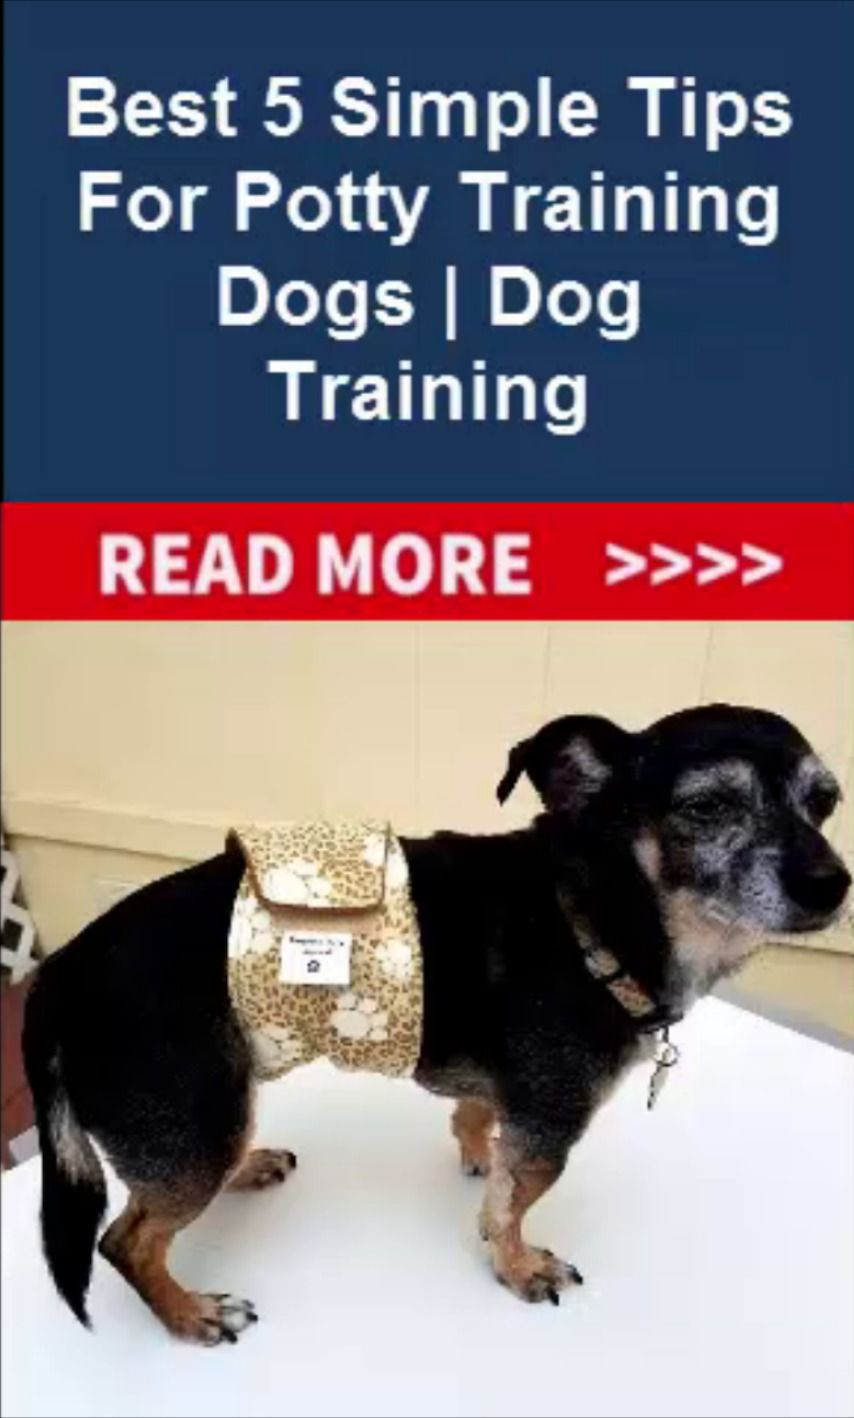 Best 5 Simple Tips For Potty Training Dogs Dog Training Dog